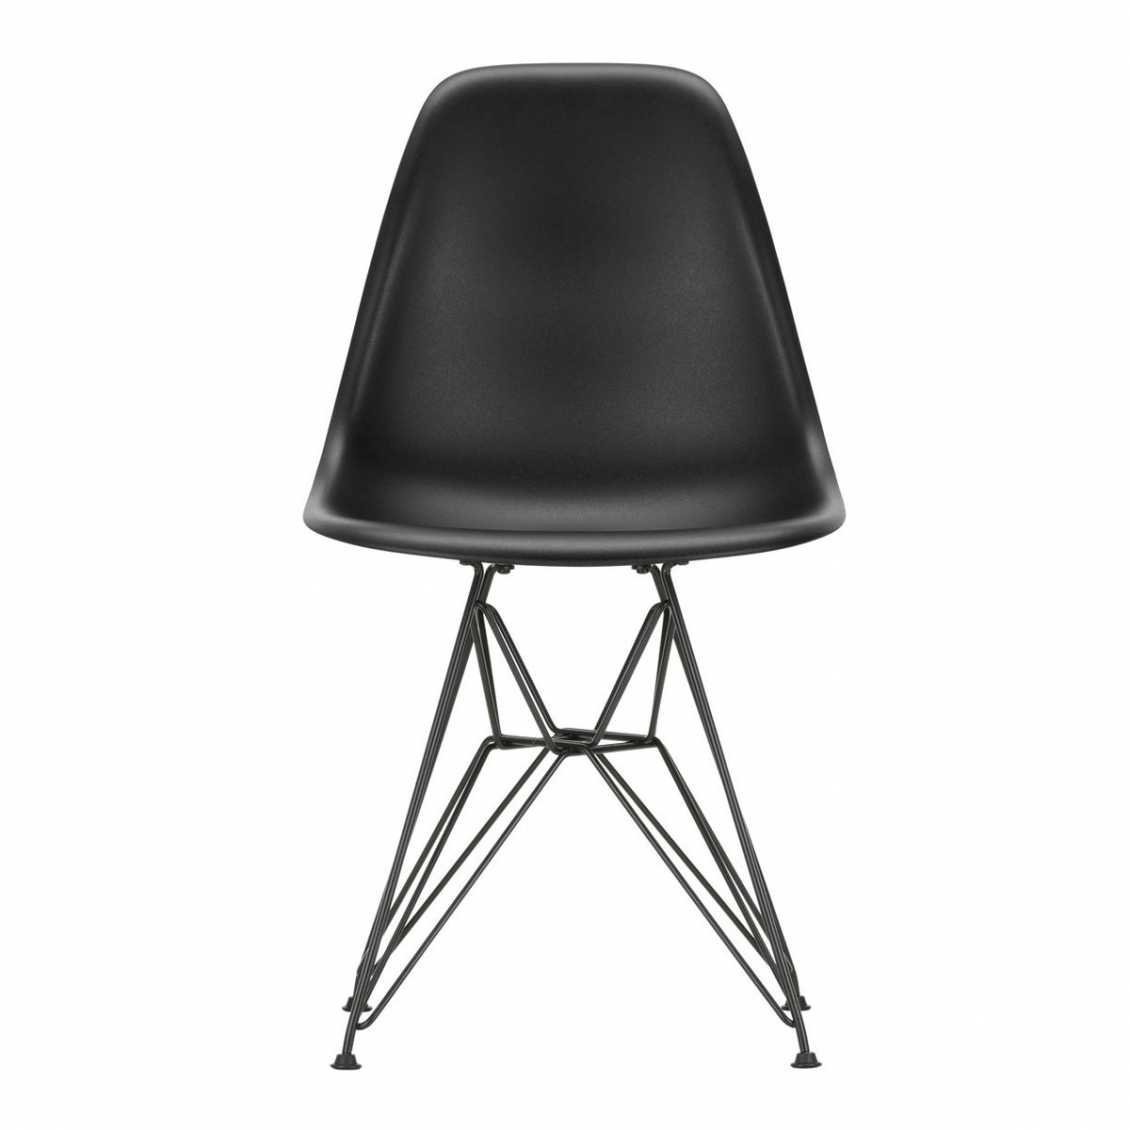 Awe Inspiring Plastic Chair Dsr Black Nordic New Machost Co Dining Chair Design Ideas Machostcouk